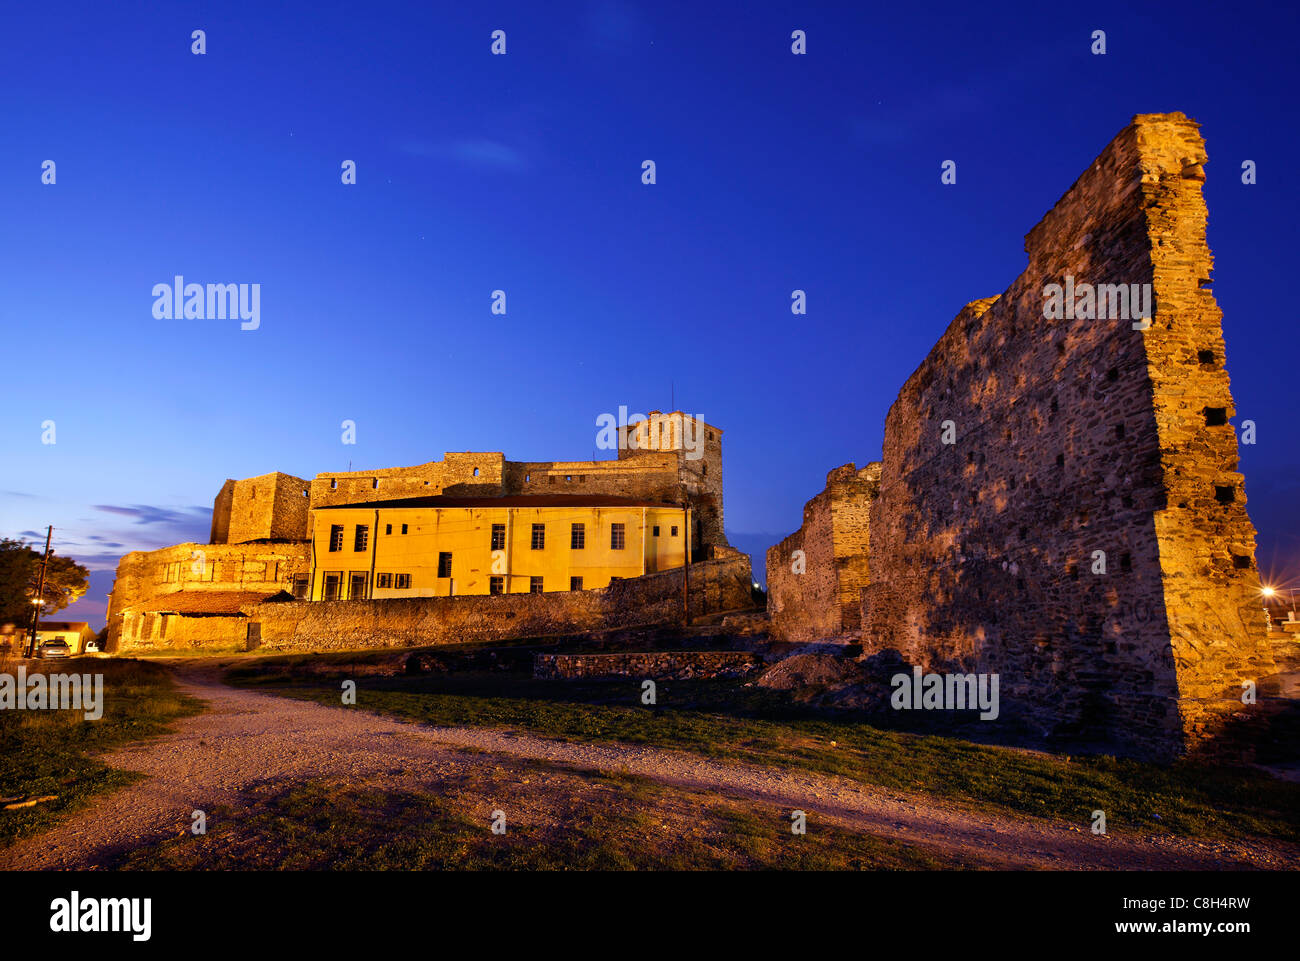 The 'Eptapyrgion' or 'Yedi Kule' (means 'Seven Towers' in Greek and Turkish), the byzantine - Stock Image